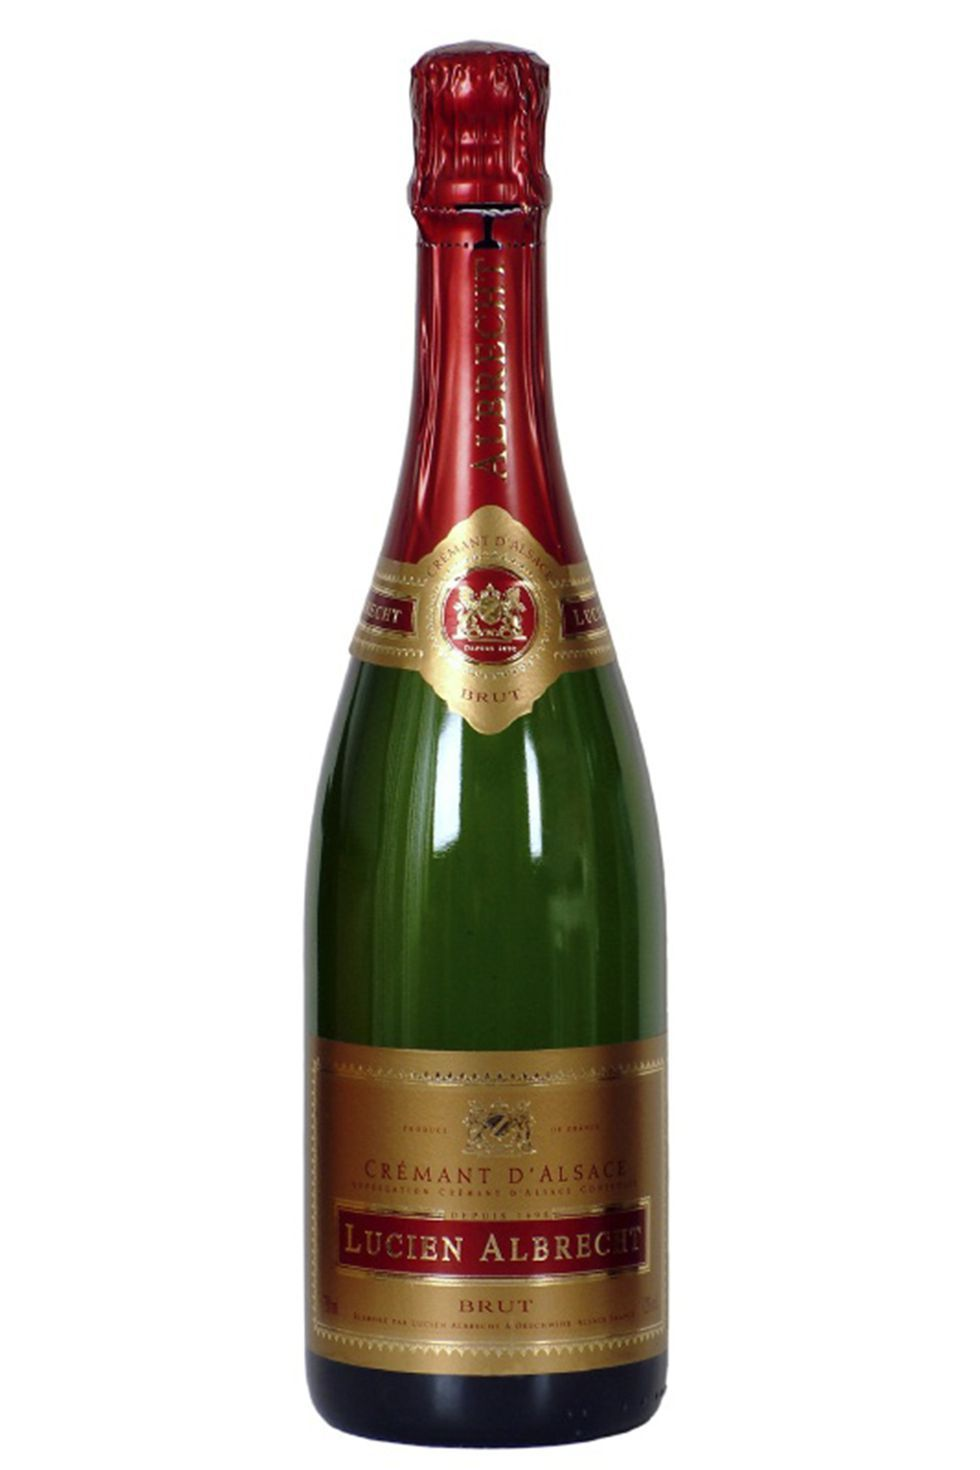 The Best Champagne For Mimosas Champagne Bottles To Make Mimosas With